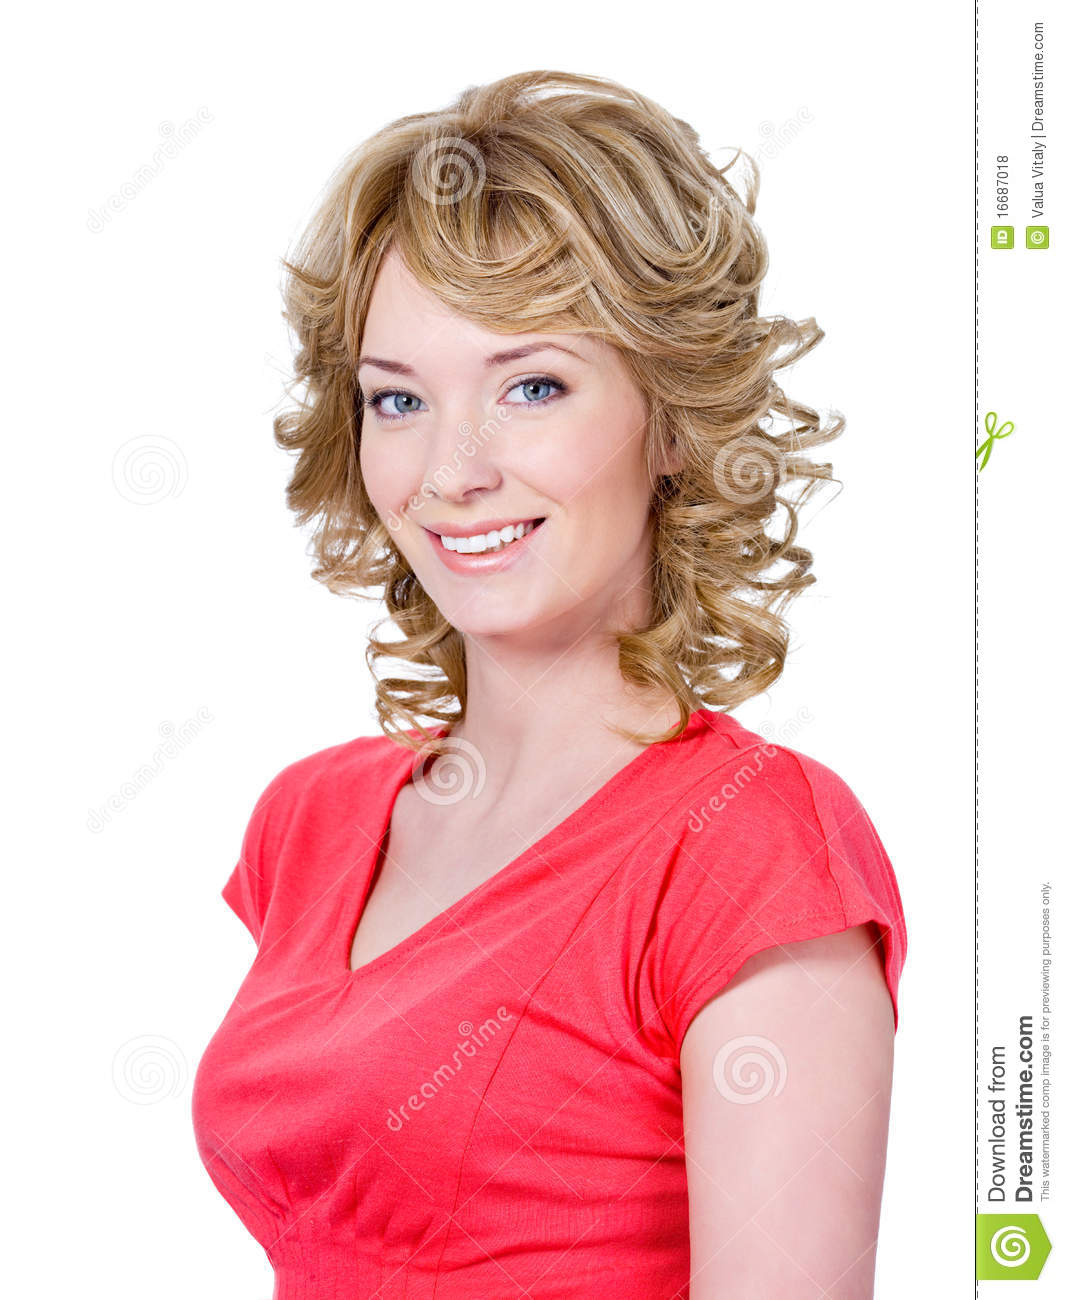 Beautiful Smiling Woman Stock Photo Image Of Space People 16687018